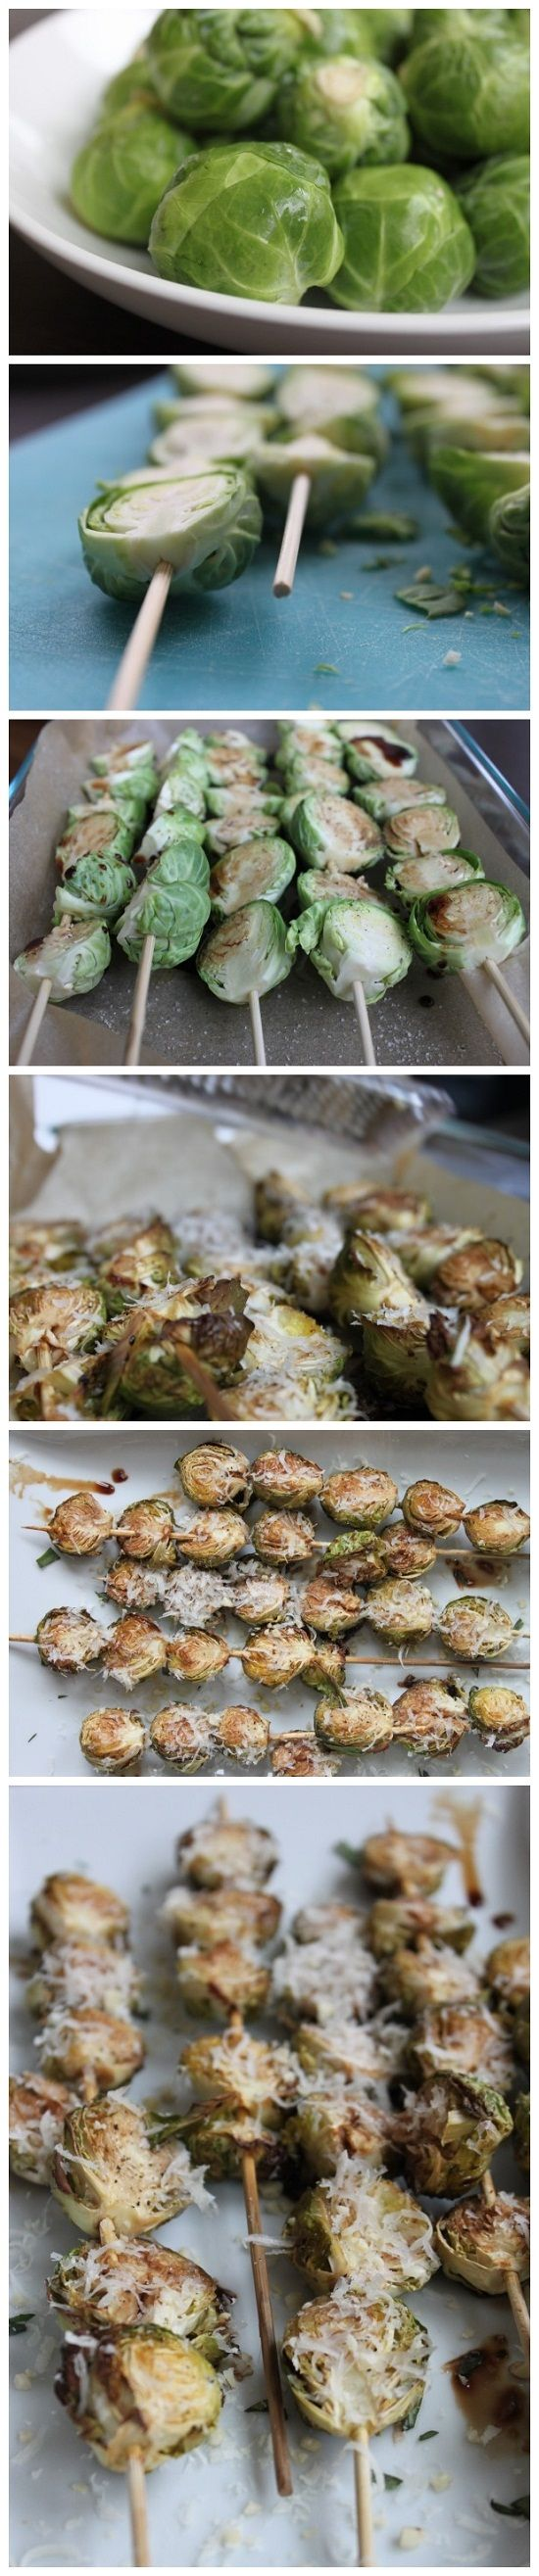 Brussels Sprouts With Bacon, Roasted Red Pepper And Pine Nuts Recipe ...